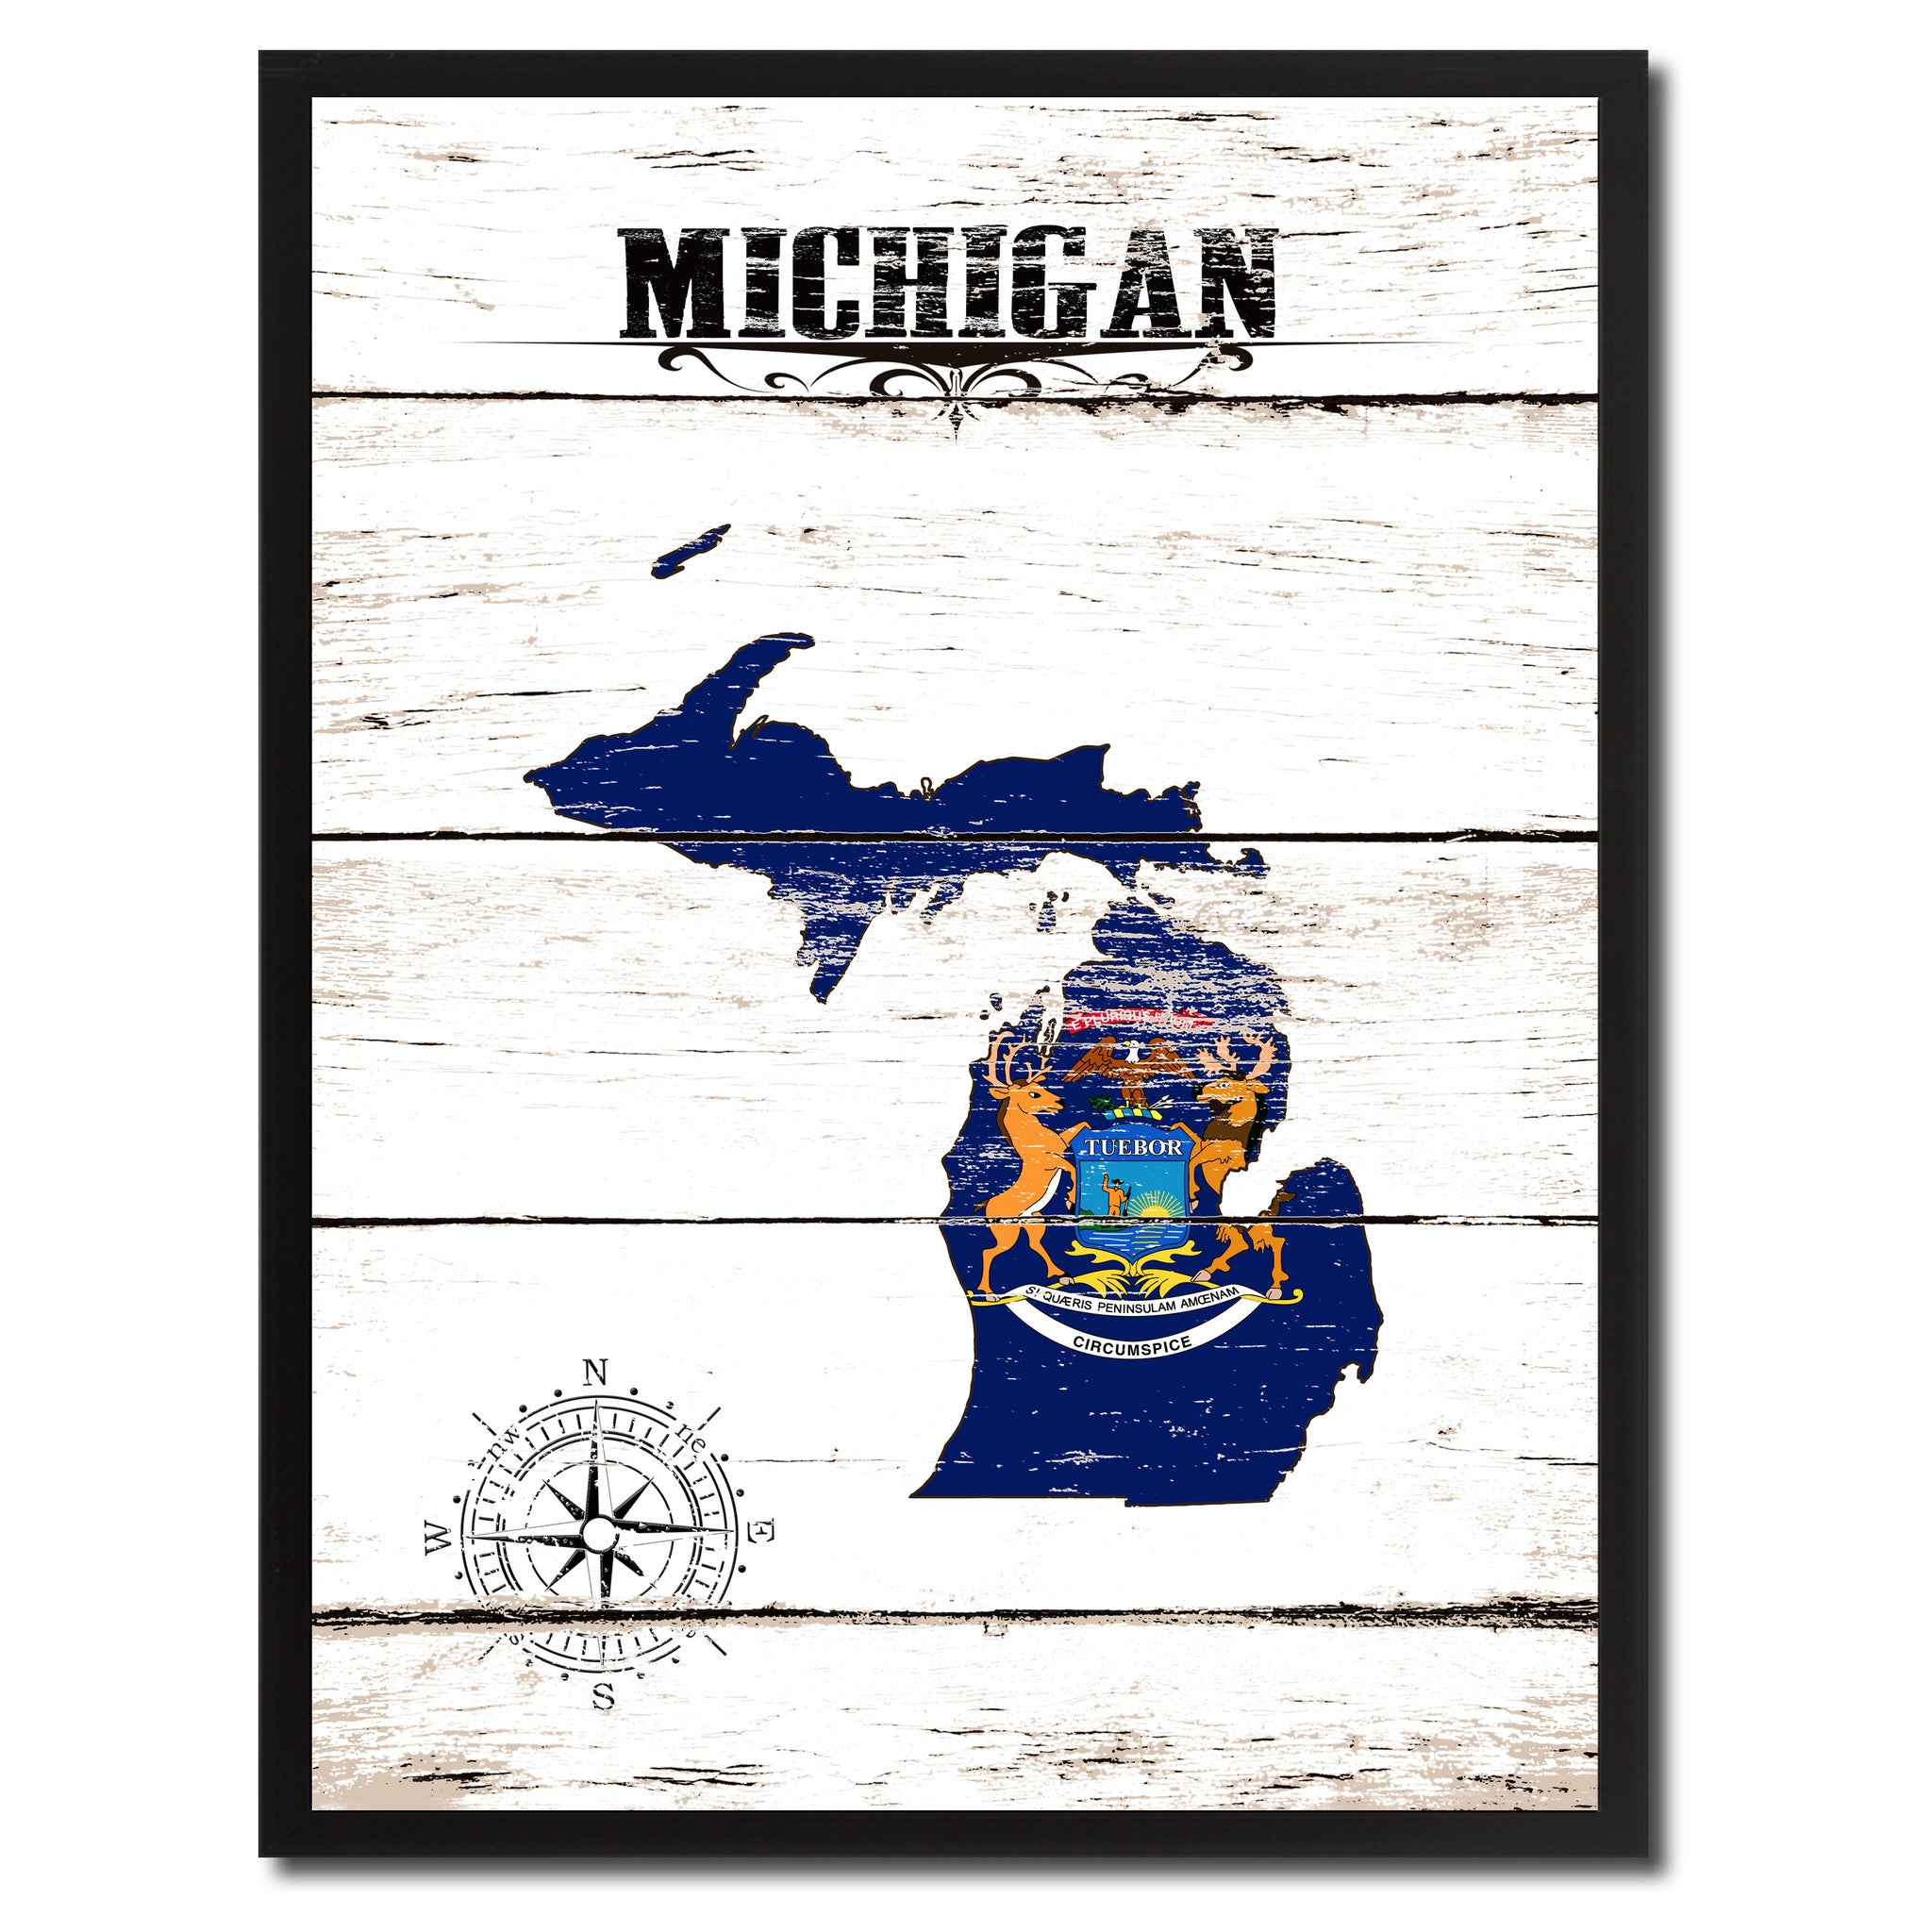 Michigan State Home Decor Office Wall Art Decoration Bedroom Livingroom Gift Ideas SpotColorArt